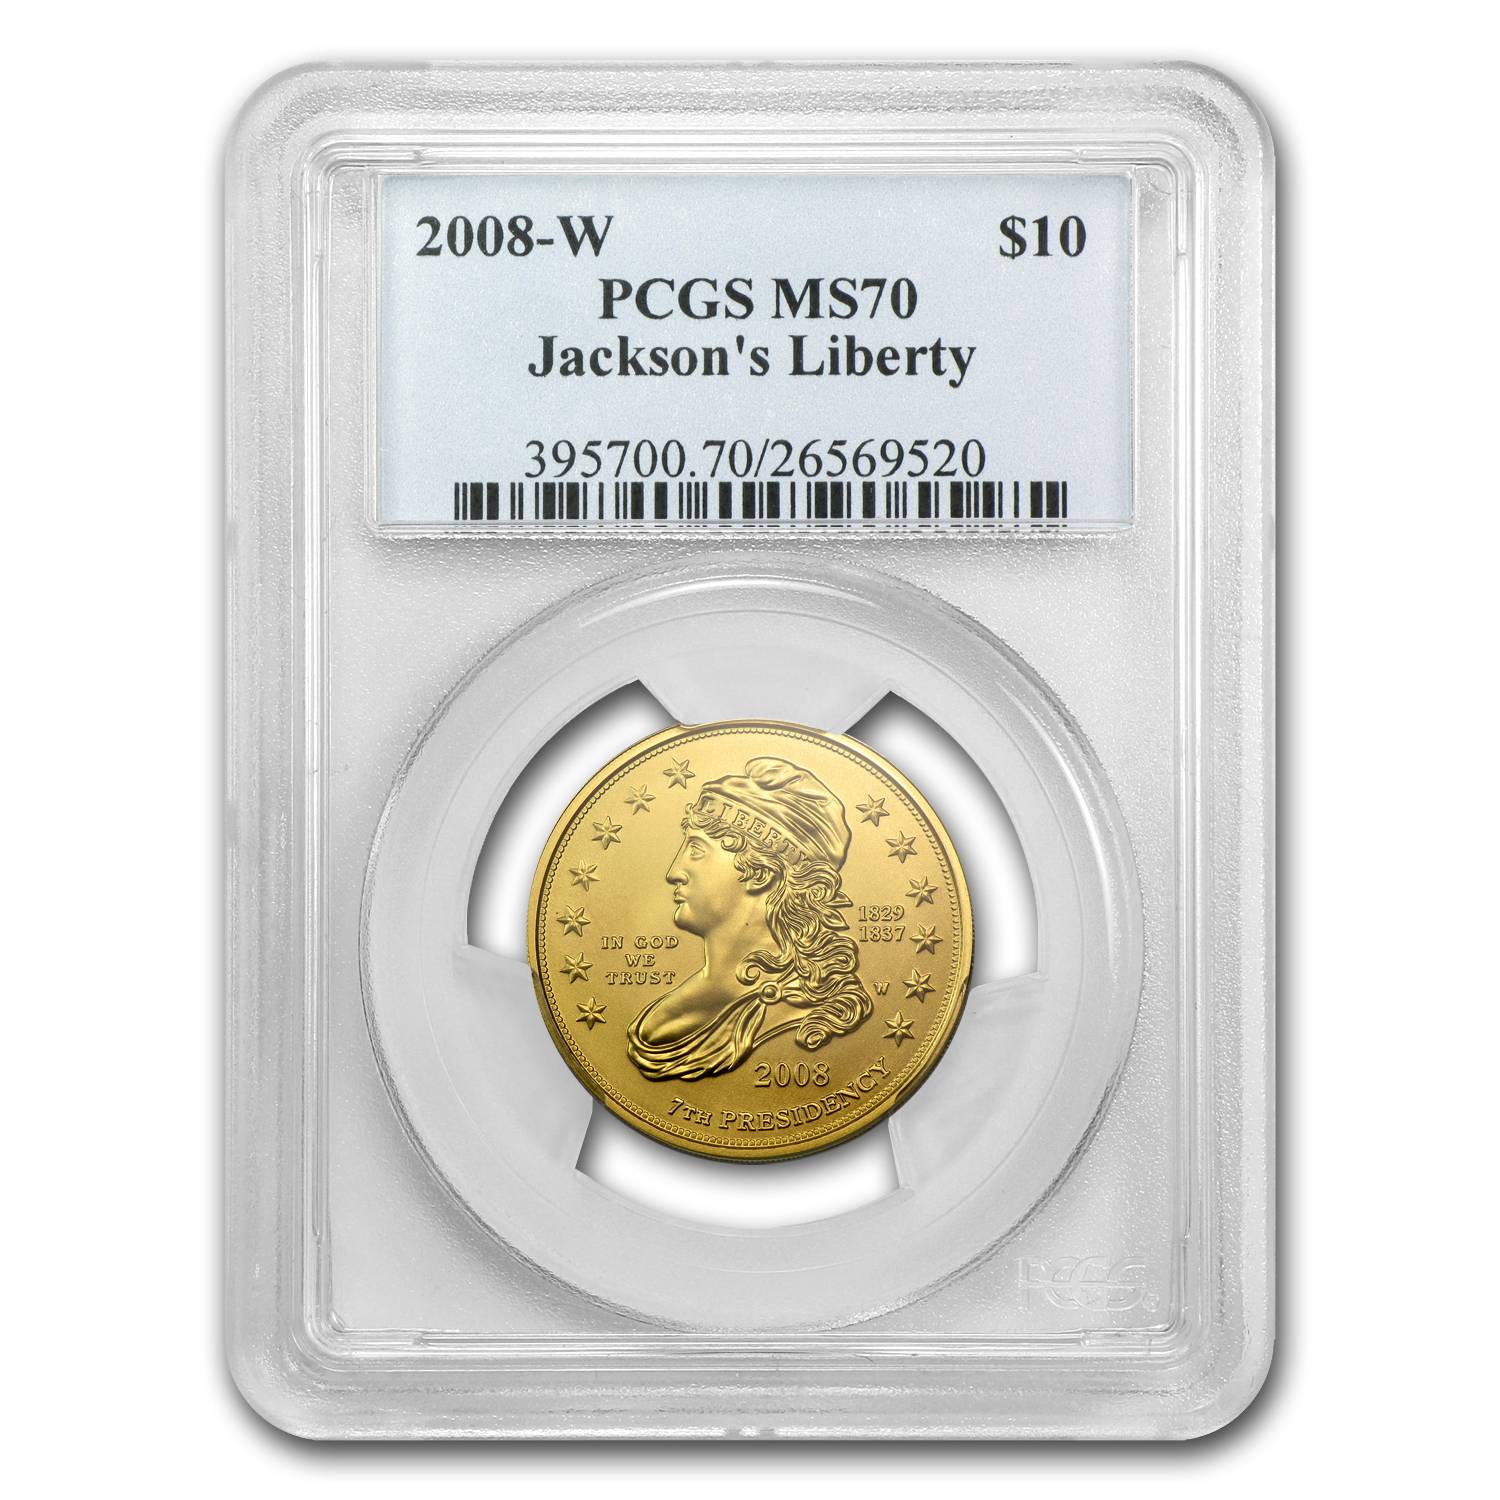 2008-W 1/2 oz Gold Jackson's Liberty MS-70 PCGS